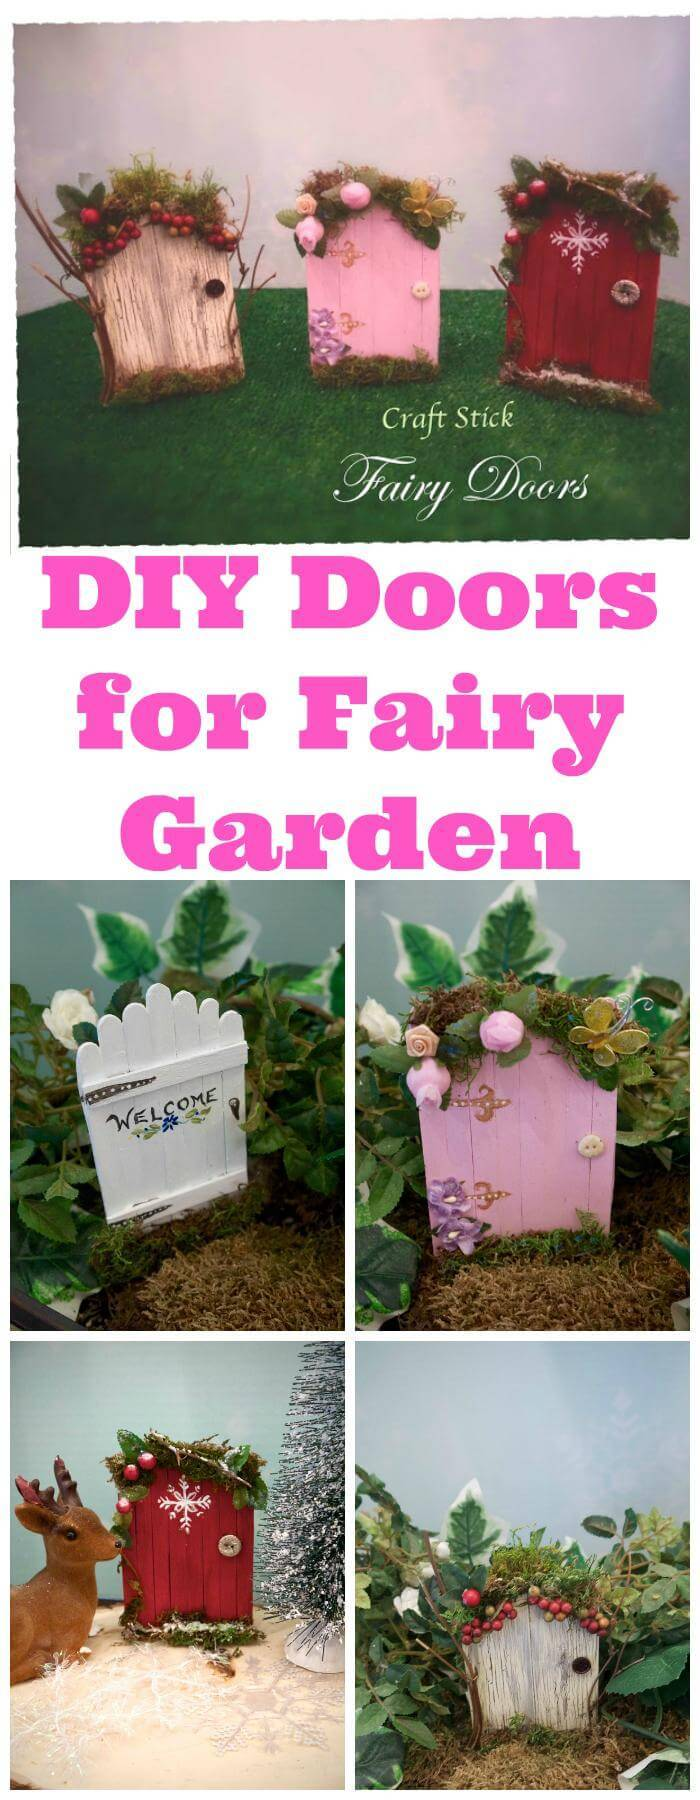 DIY Doors for Fairy Garden